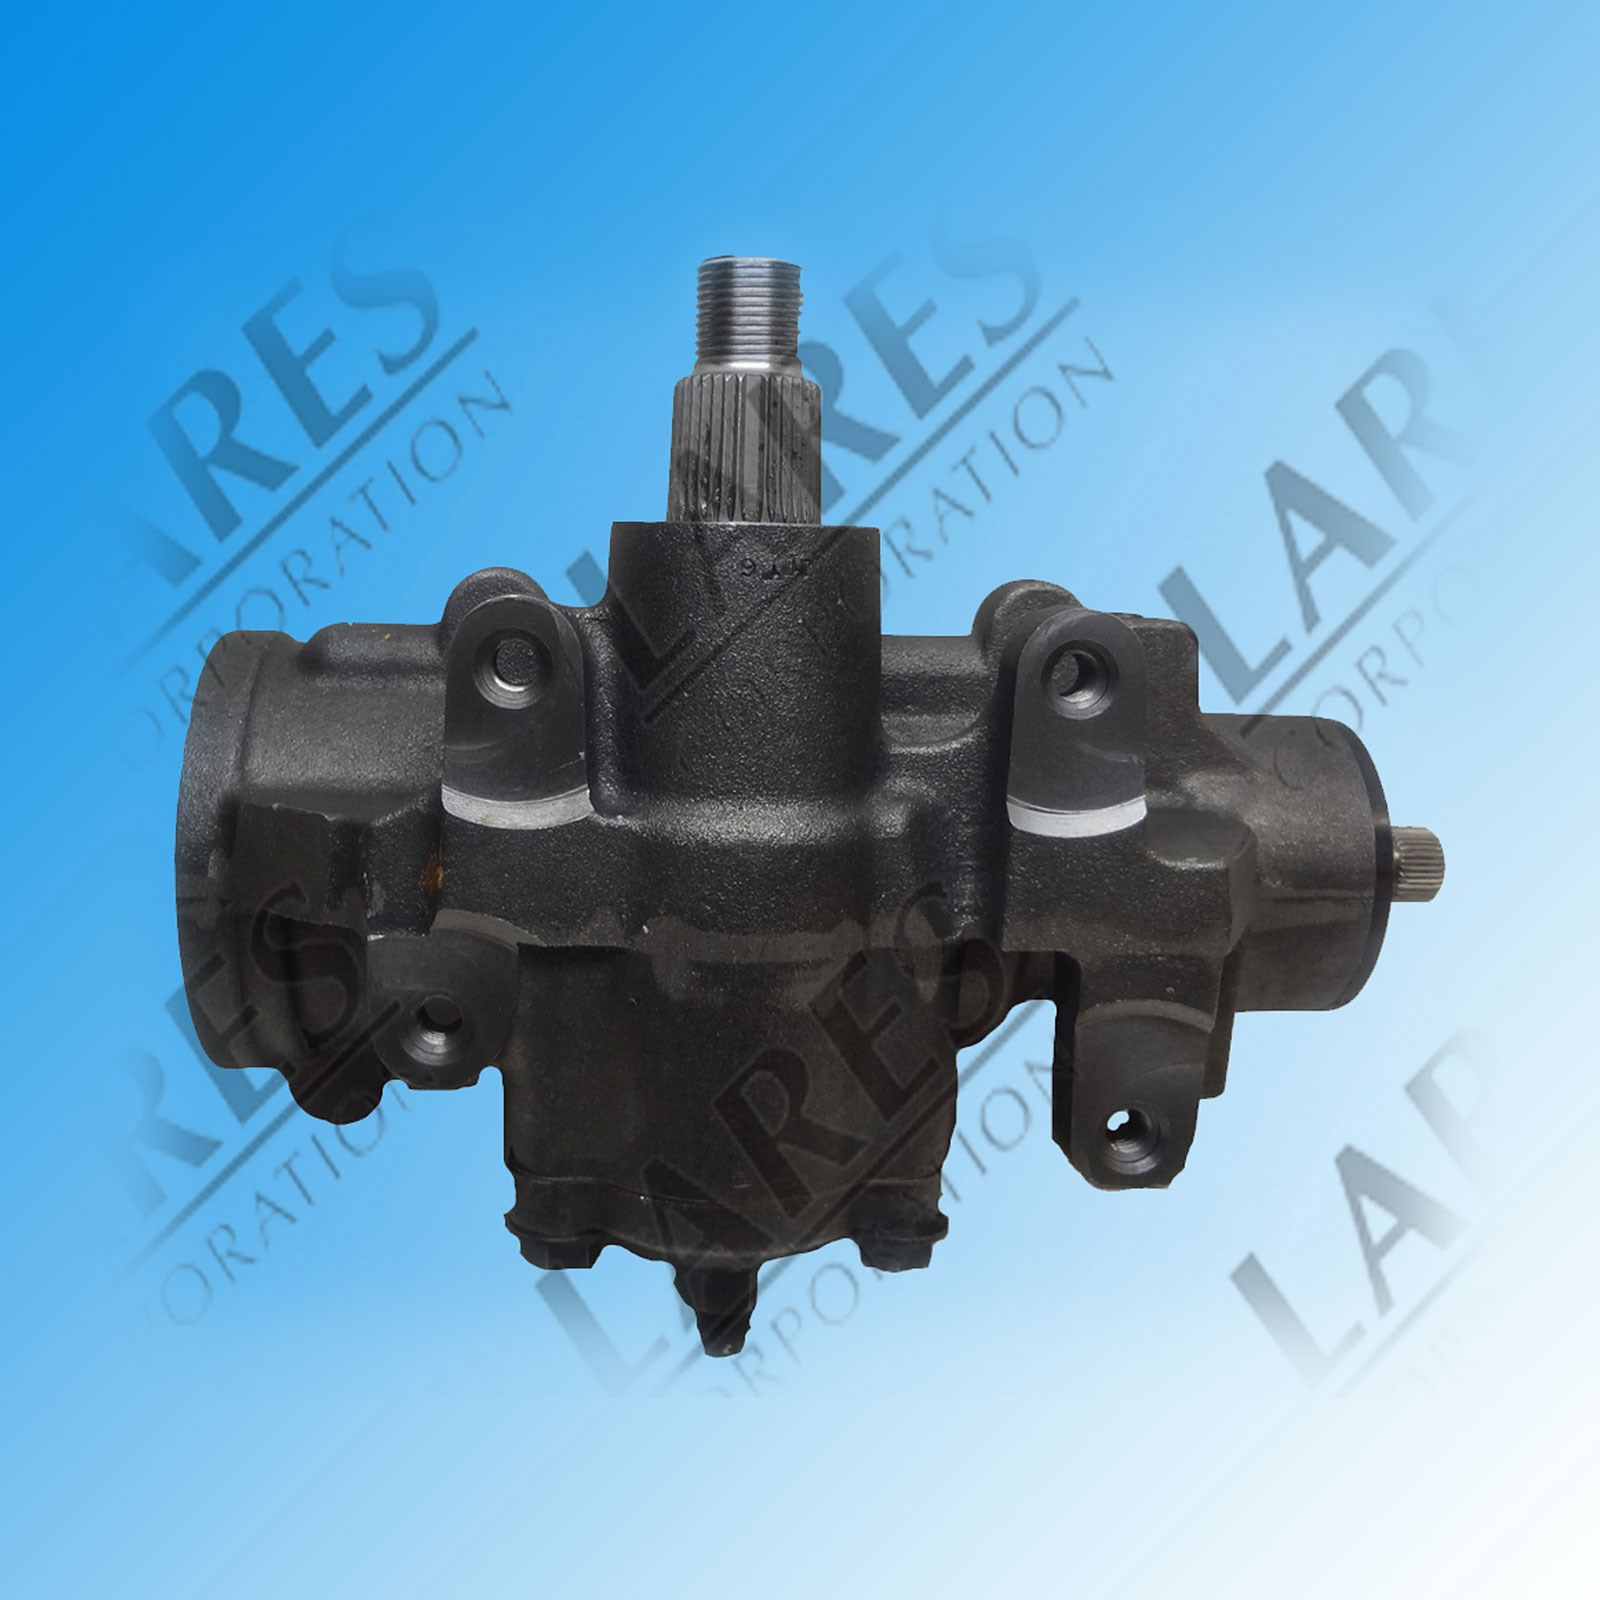 Power Steering Gear, Part No. 11074-a